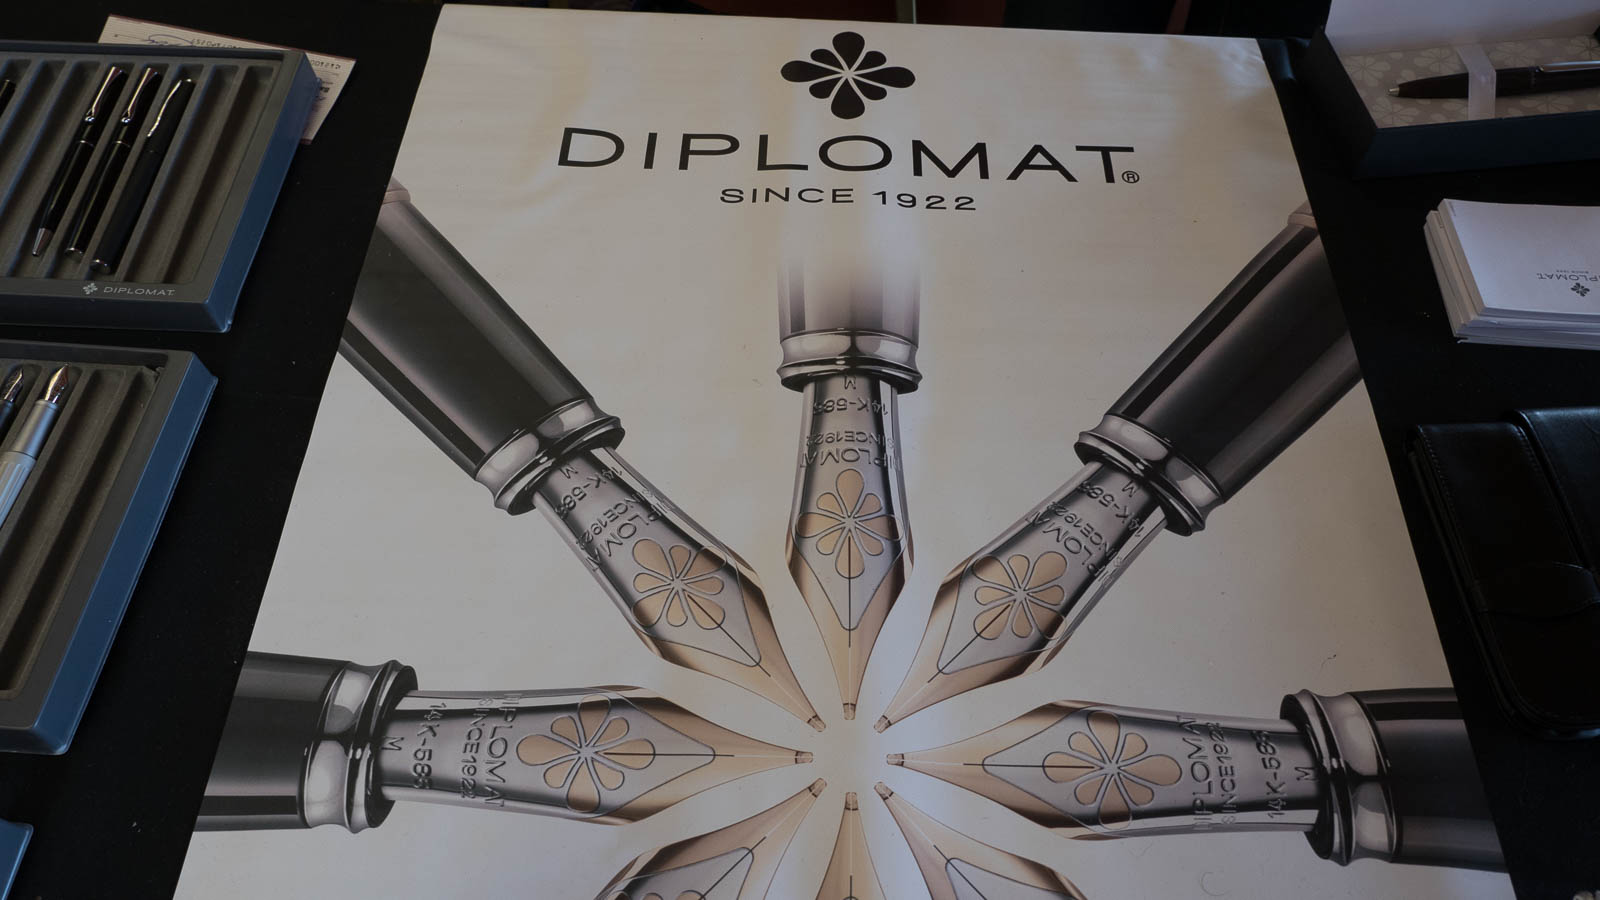 Diplomat: a German brand that's been around since 1922, but doesn't have a huge presence in the states yet.